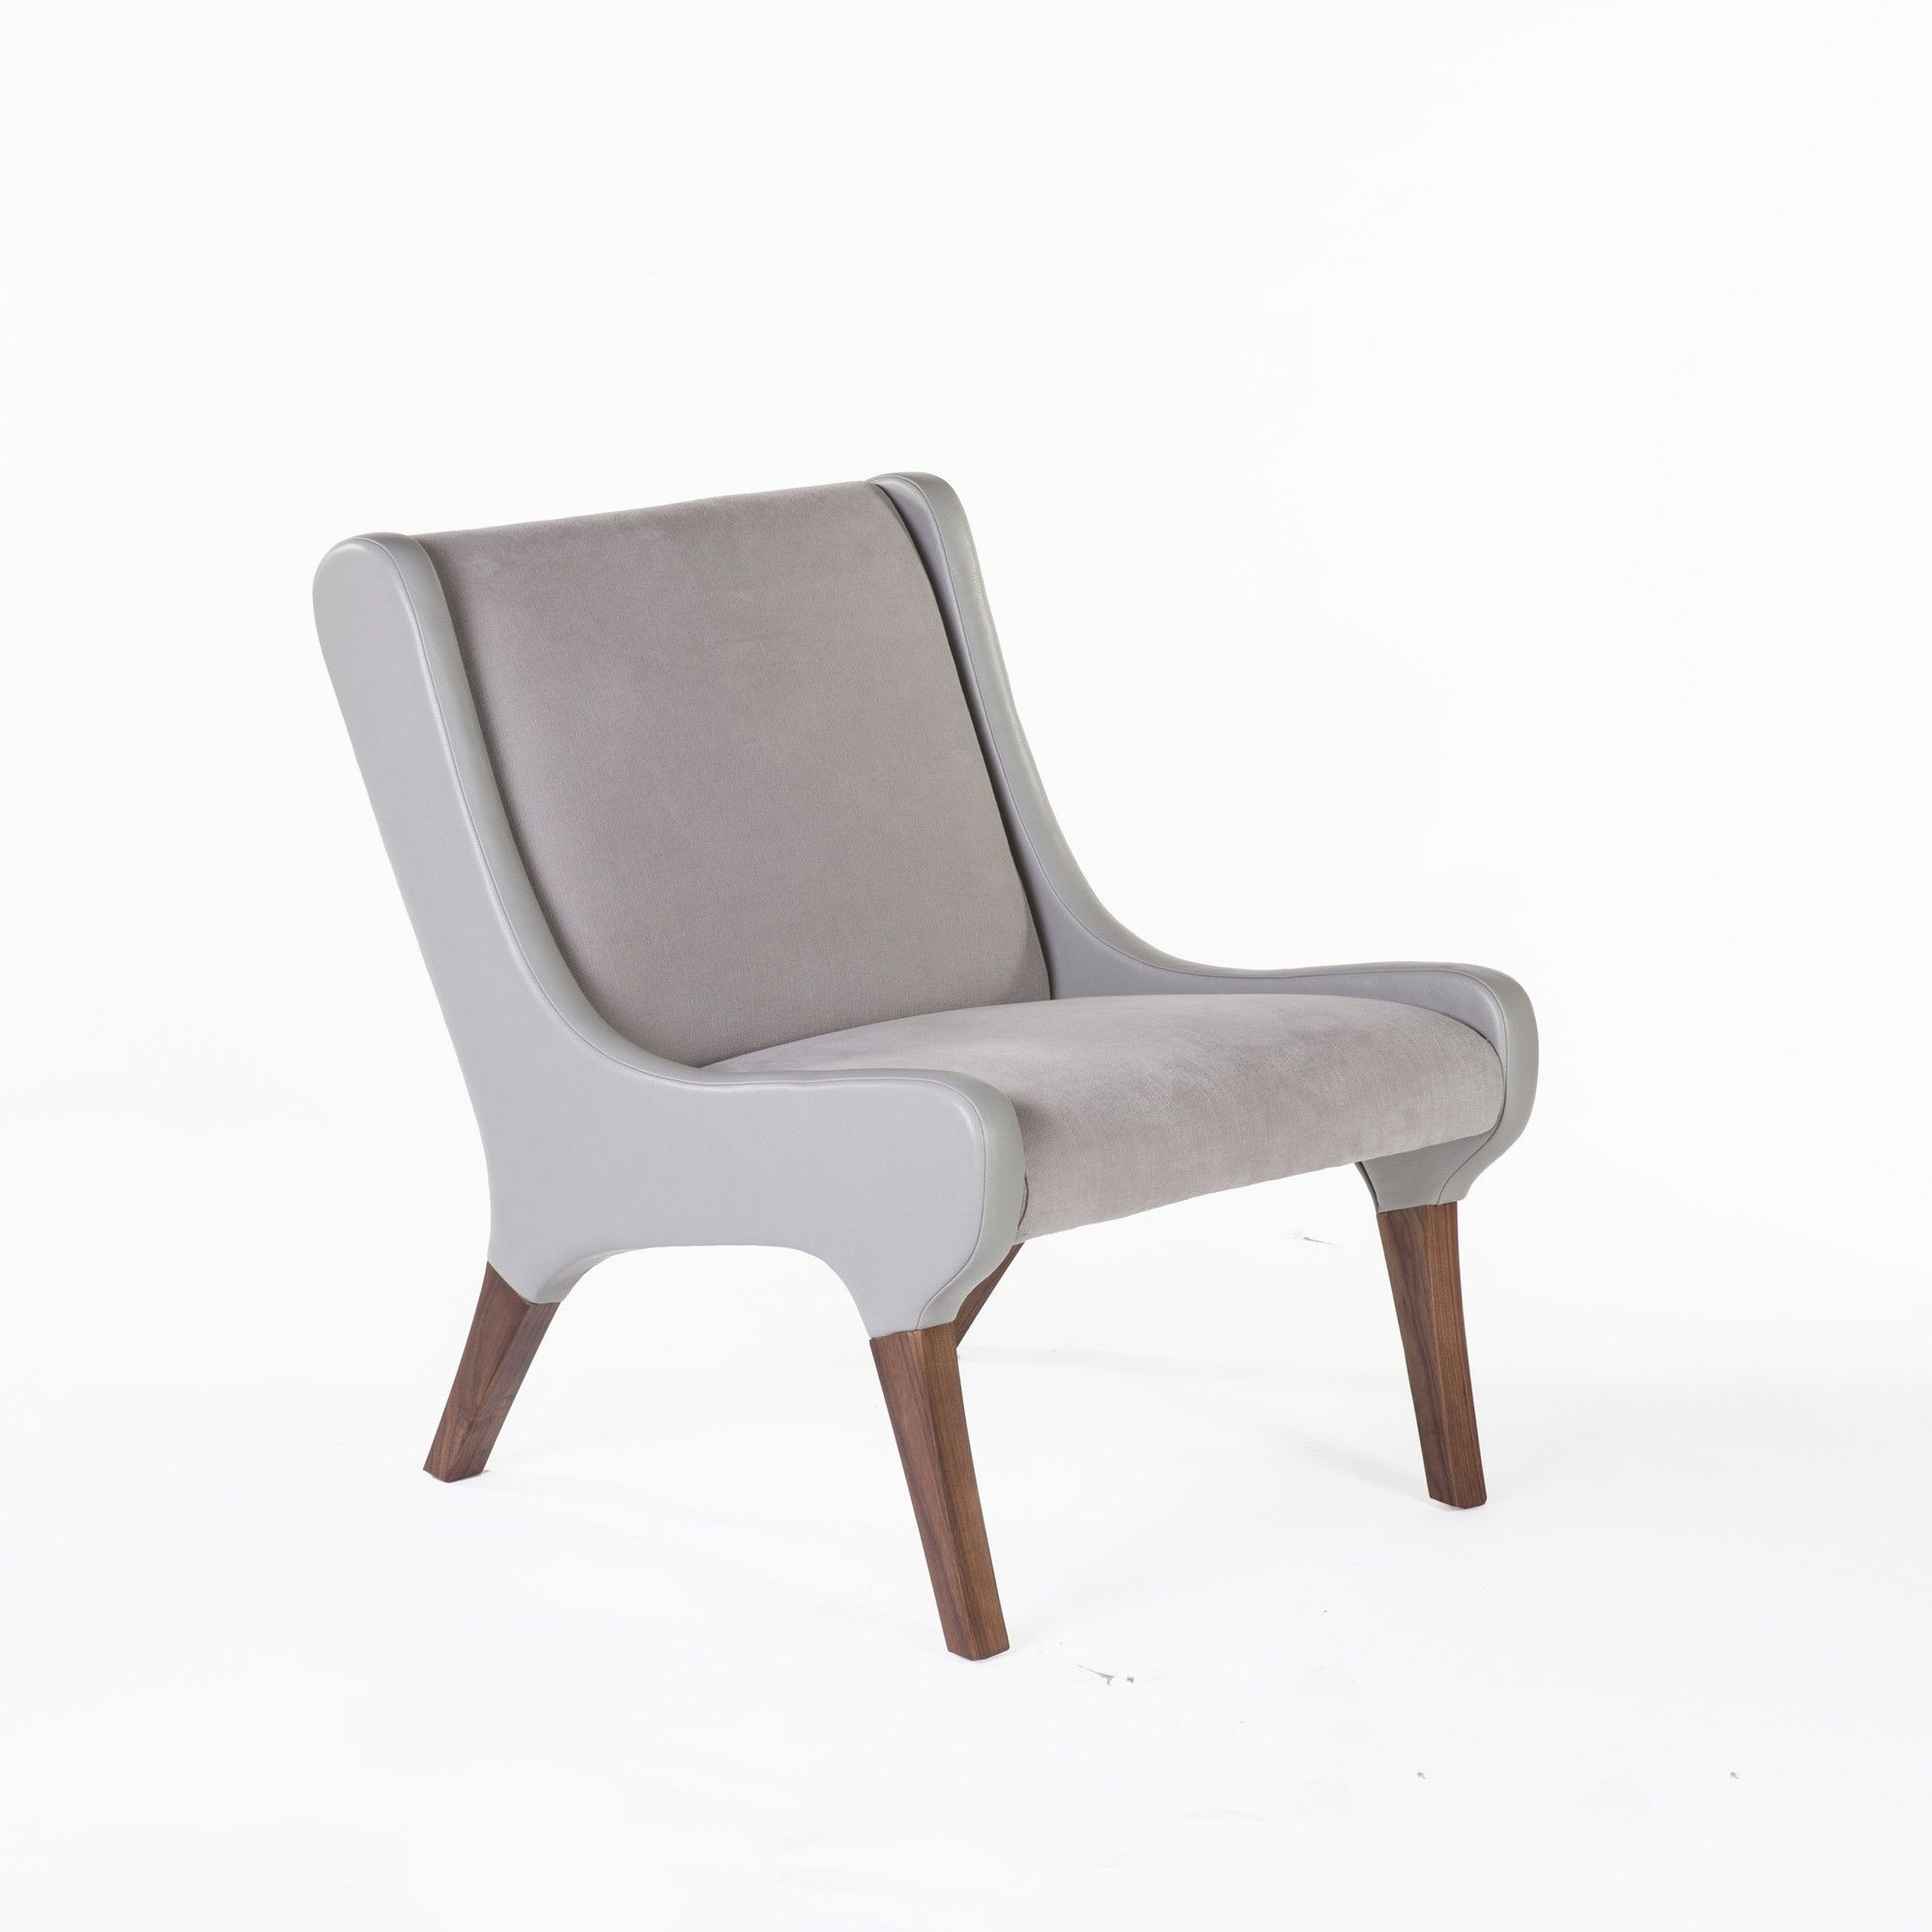 The Brandt Lounge Arm Chair